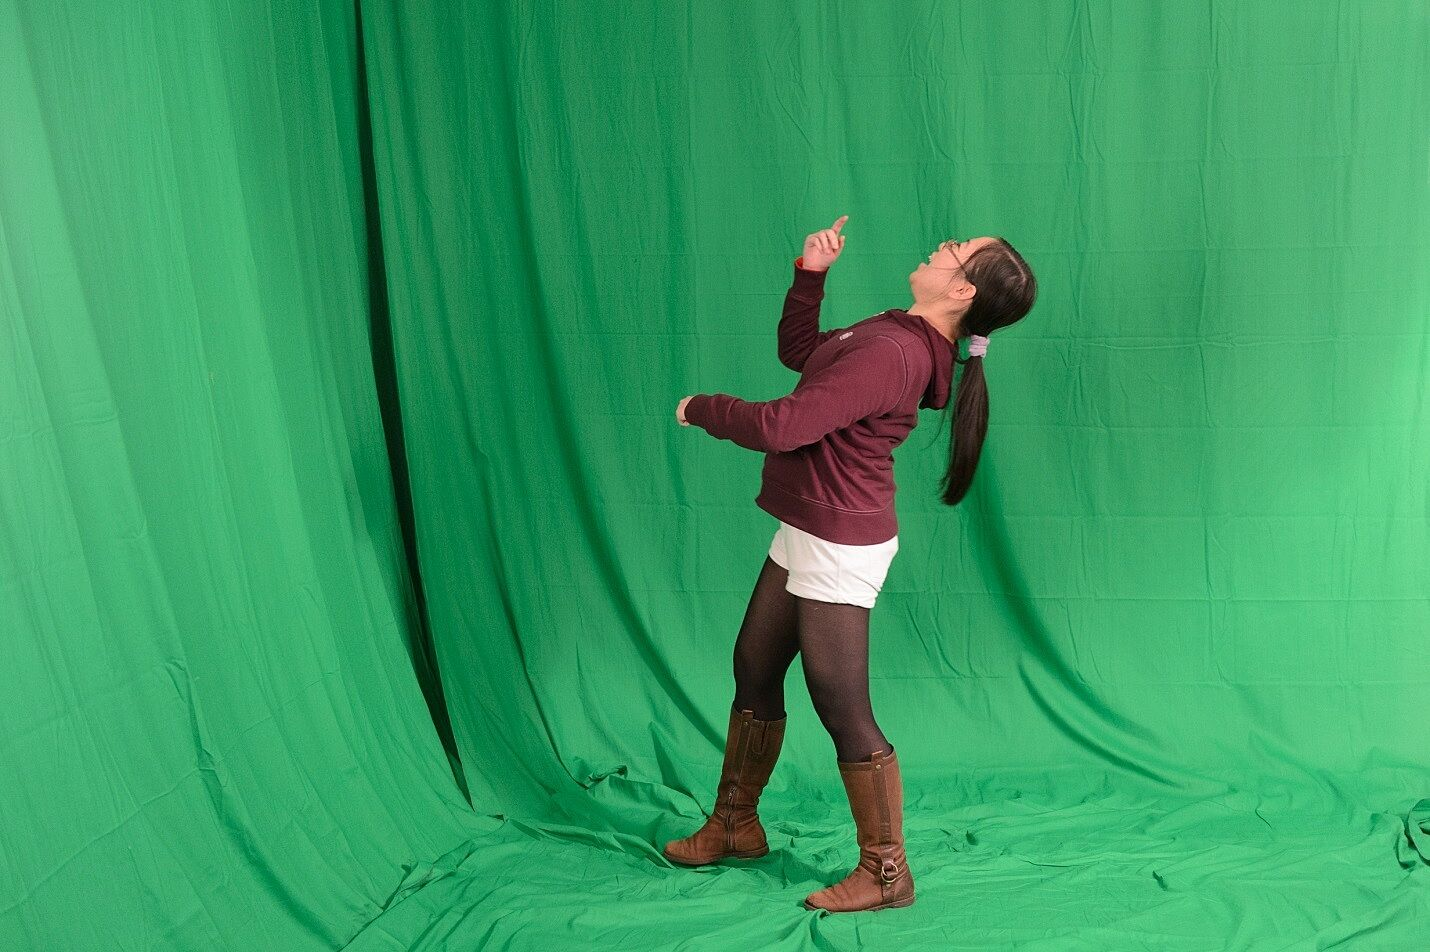 Y I Artist Sally performs in front of the green screen